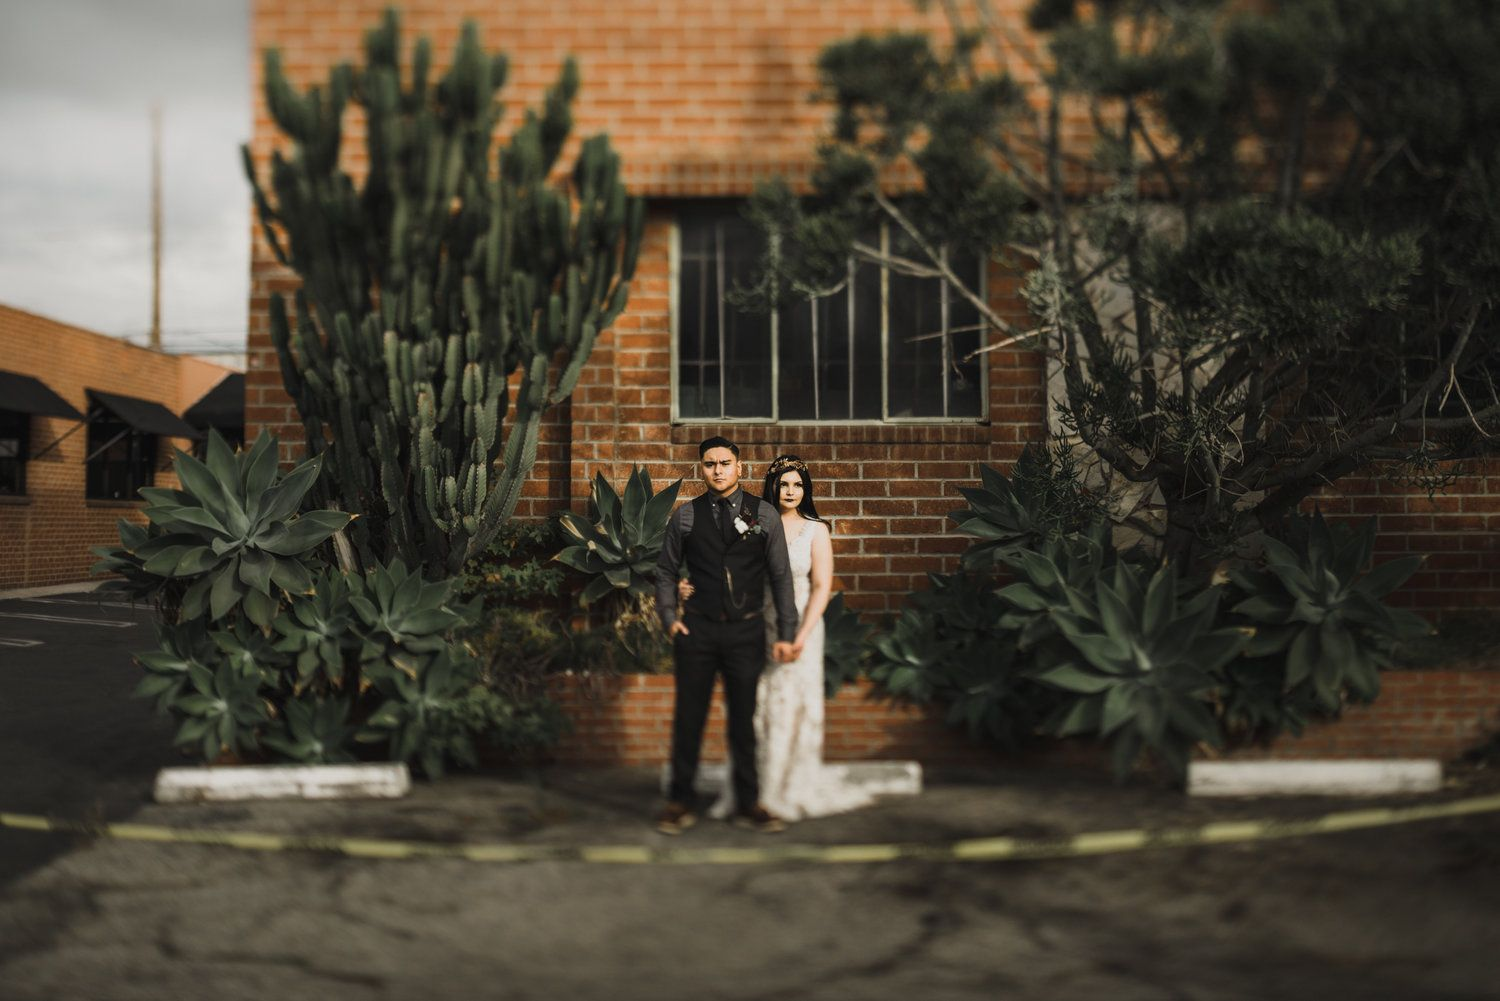 Smoky Hollow Studio Wedding El Segundo Autumn Inspirationindoor Ceremonywarehouse Weddingwedding Locationswarehousesreceptionslos Angeles